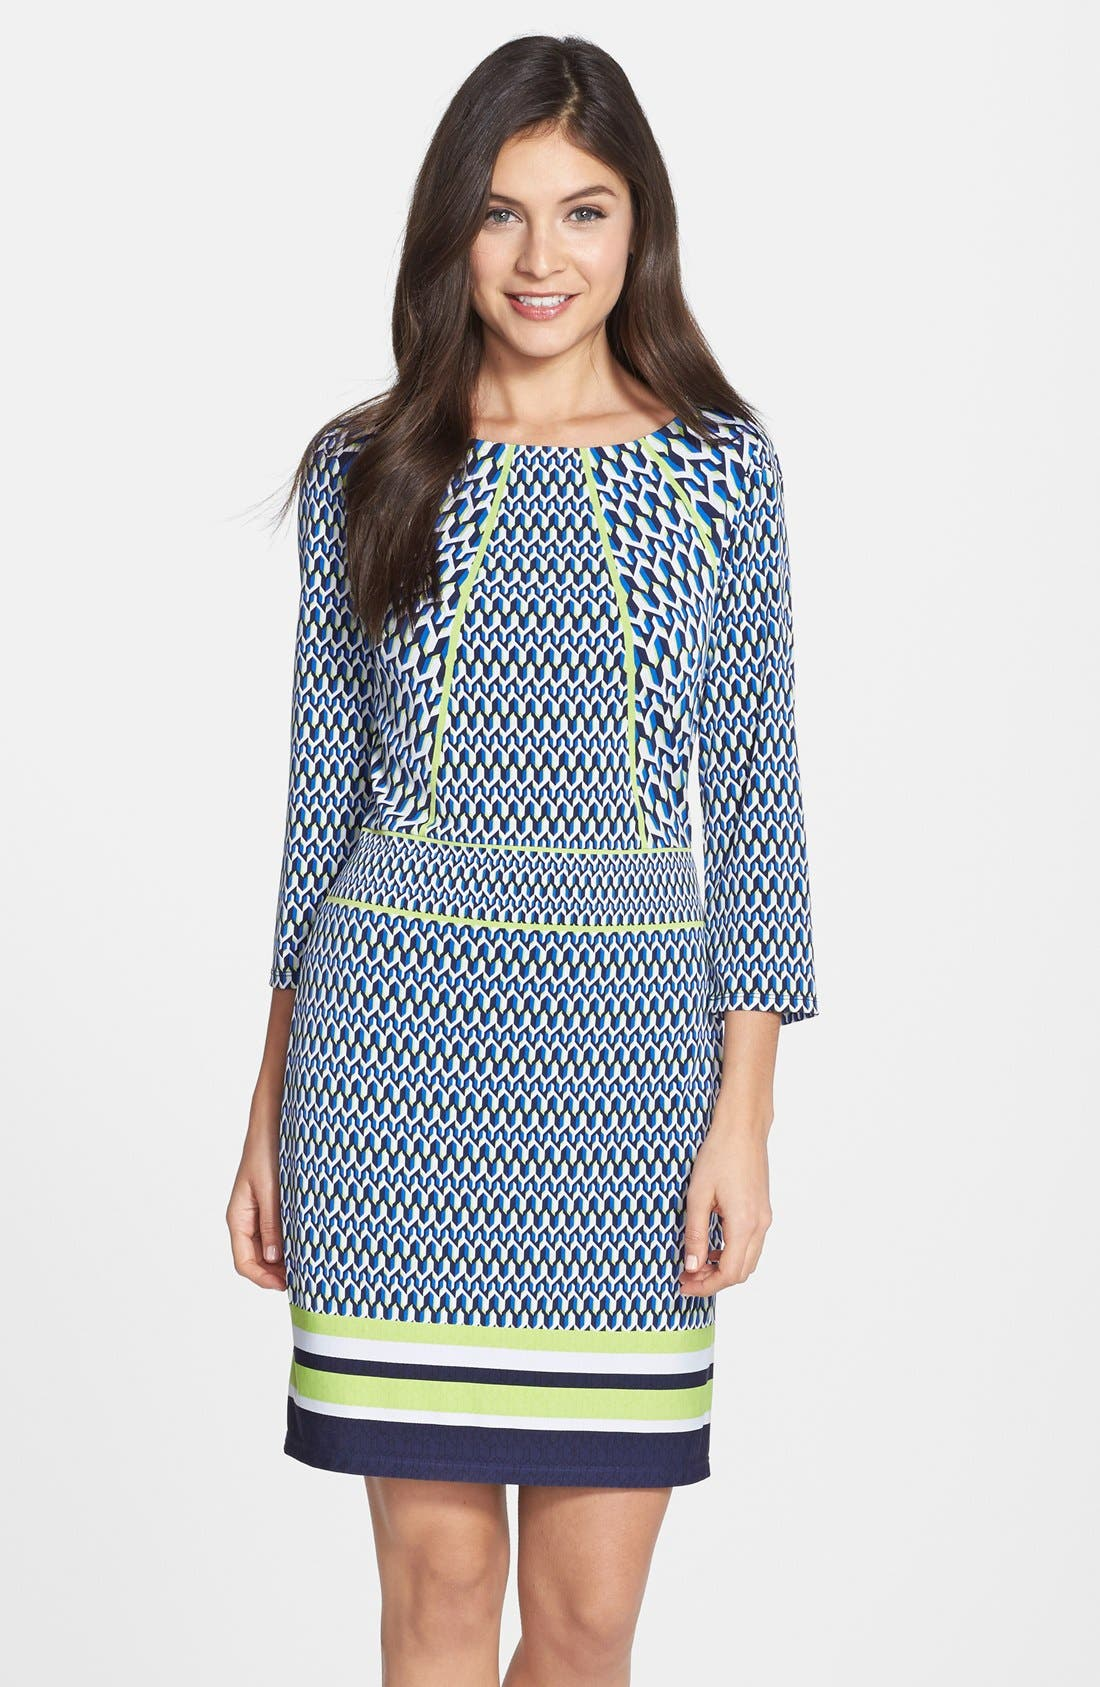 Alternate Image 1 Selected - Laundry by Shelli Segal Print Jersey Sheath Dress (Regular & Petite)